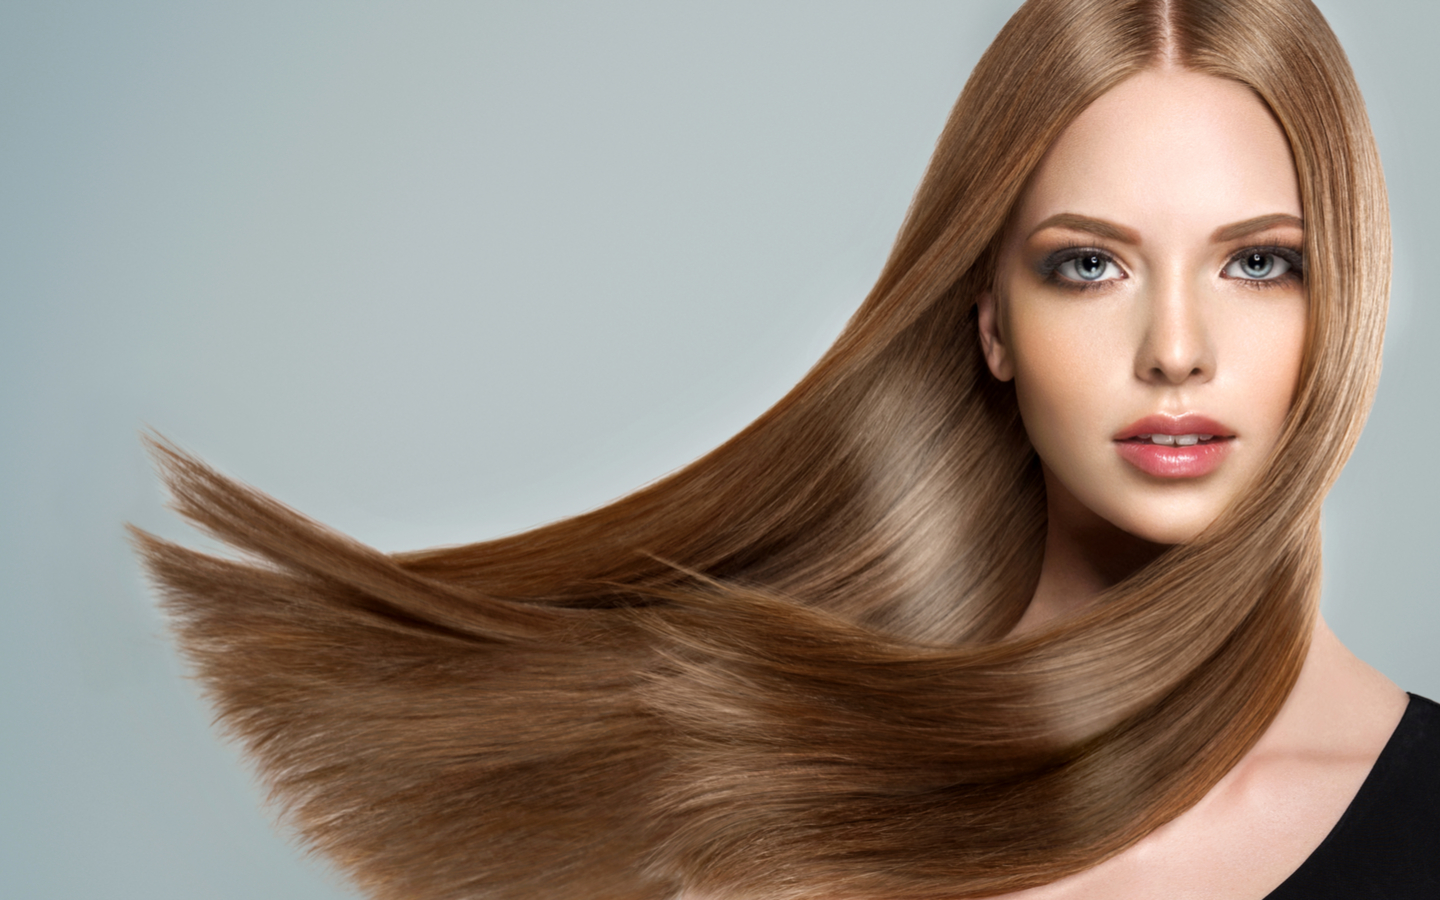 Hair smoothening treatments rid your hair of the nasty frizz, avail this treatment at Senses salon